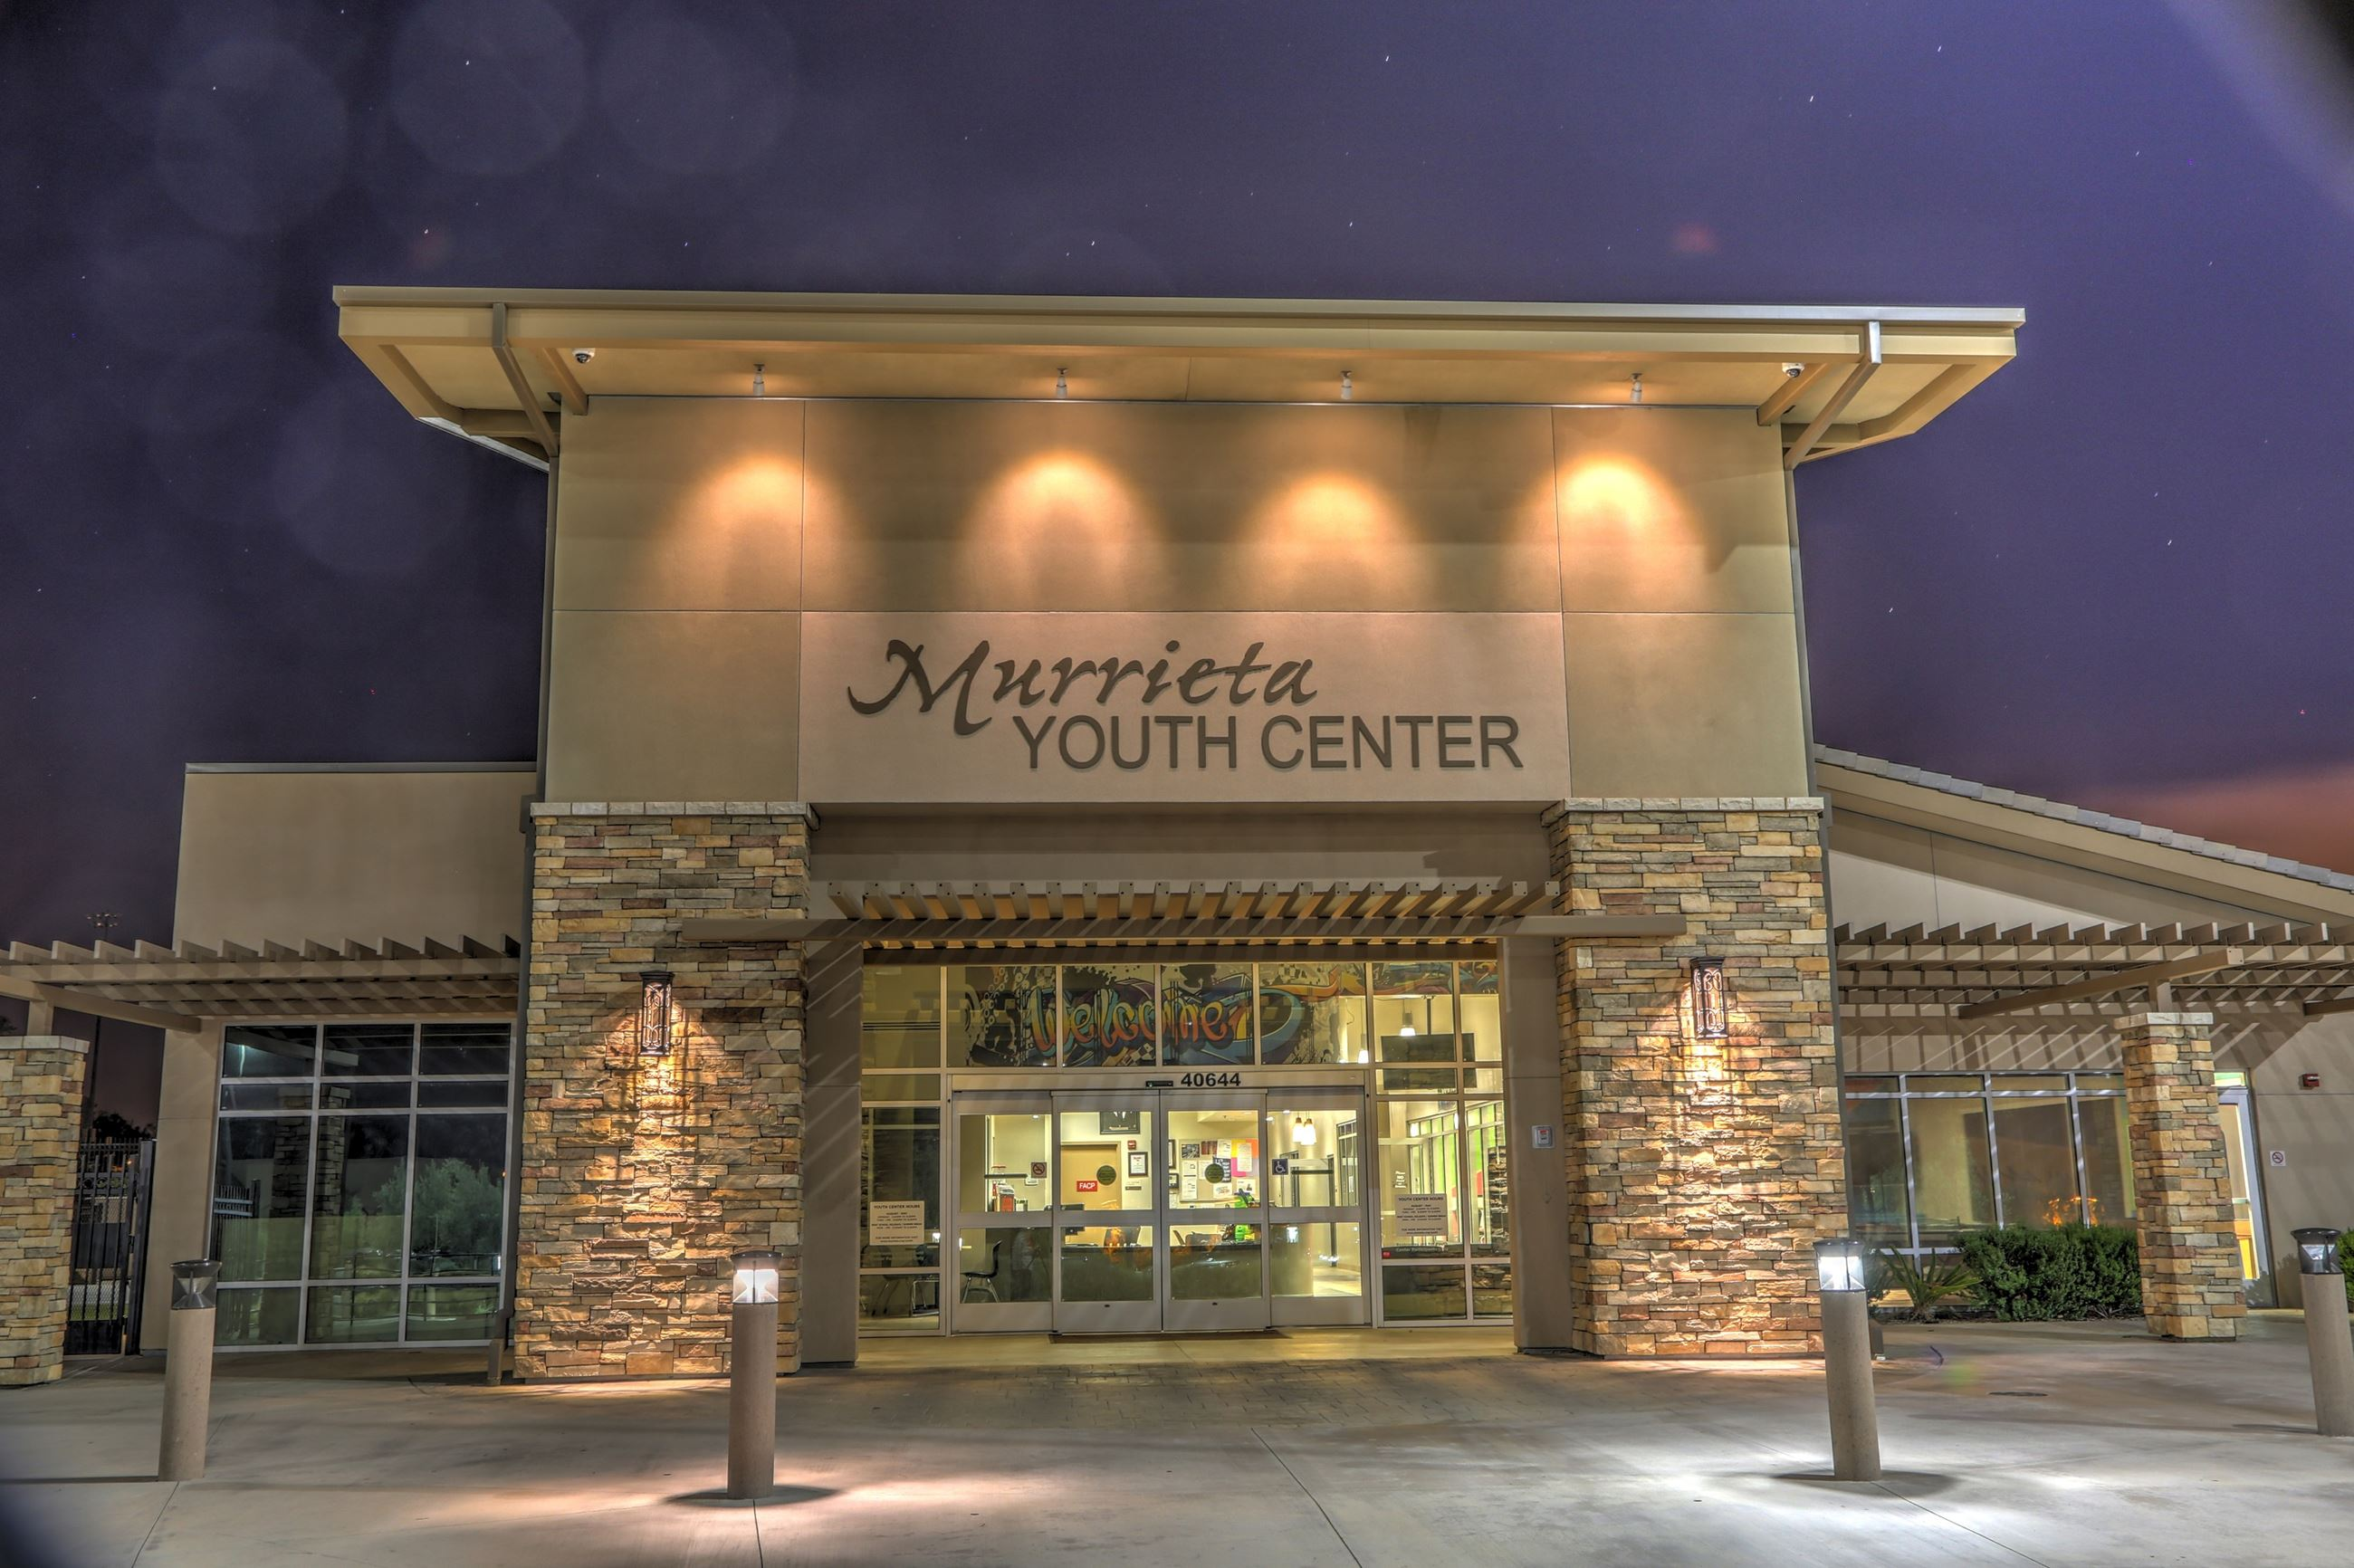 Exterior of the Murrieta Youth Center